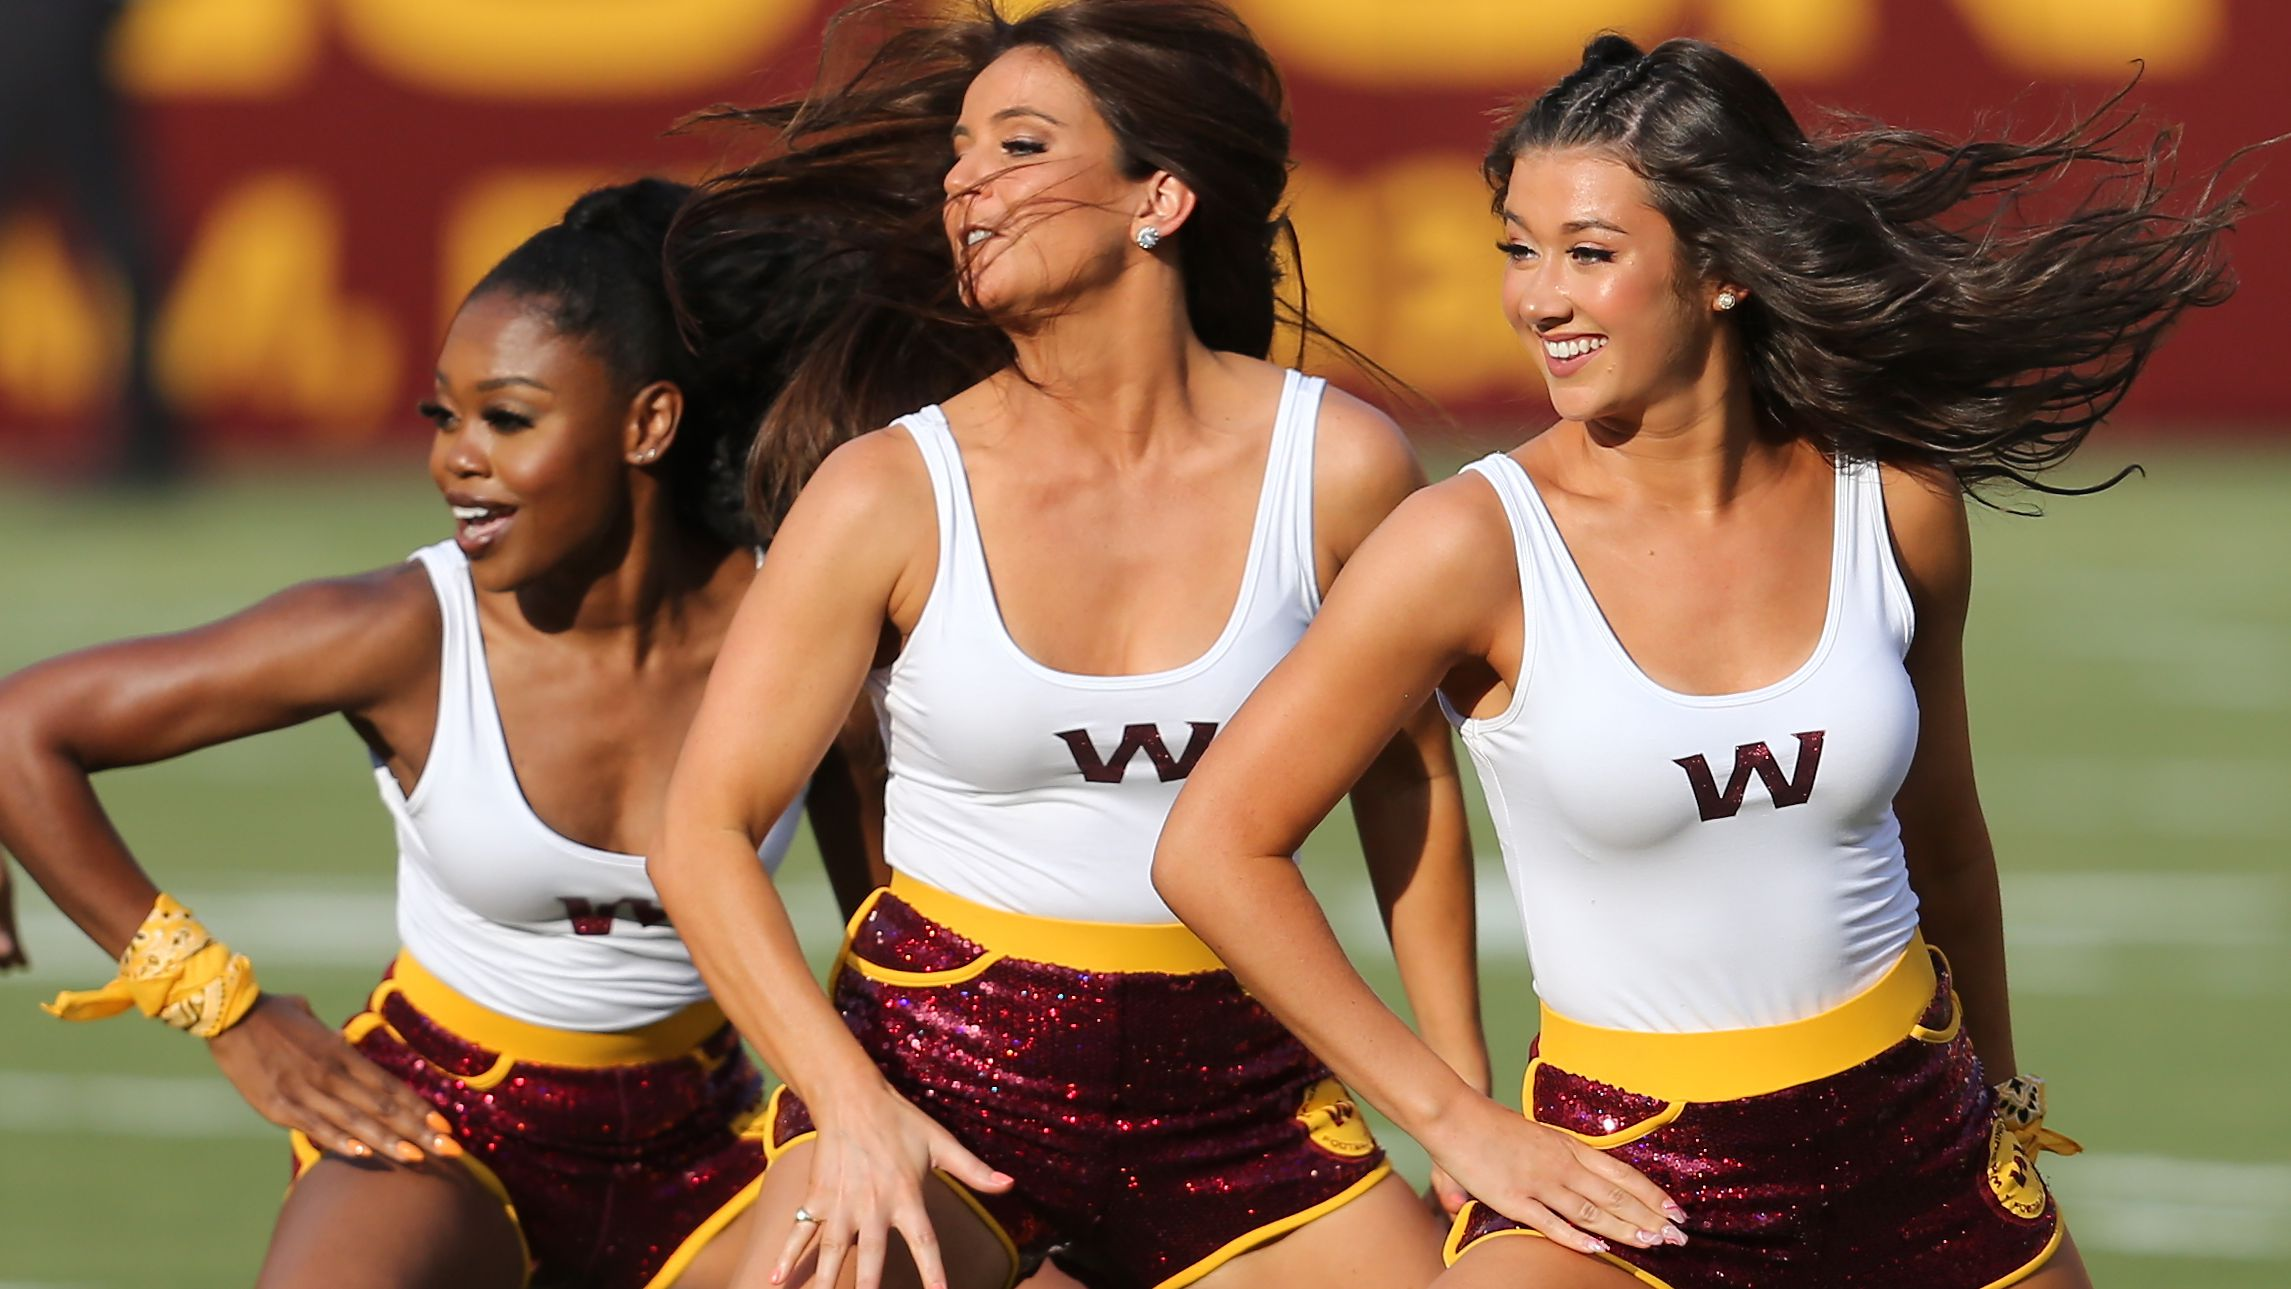 Inappropriate photos of Washington Football Team's cheerleaders uncovered amid Gruden email scandal